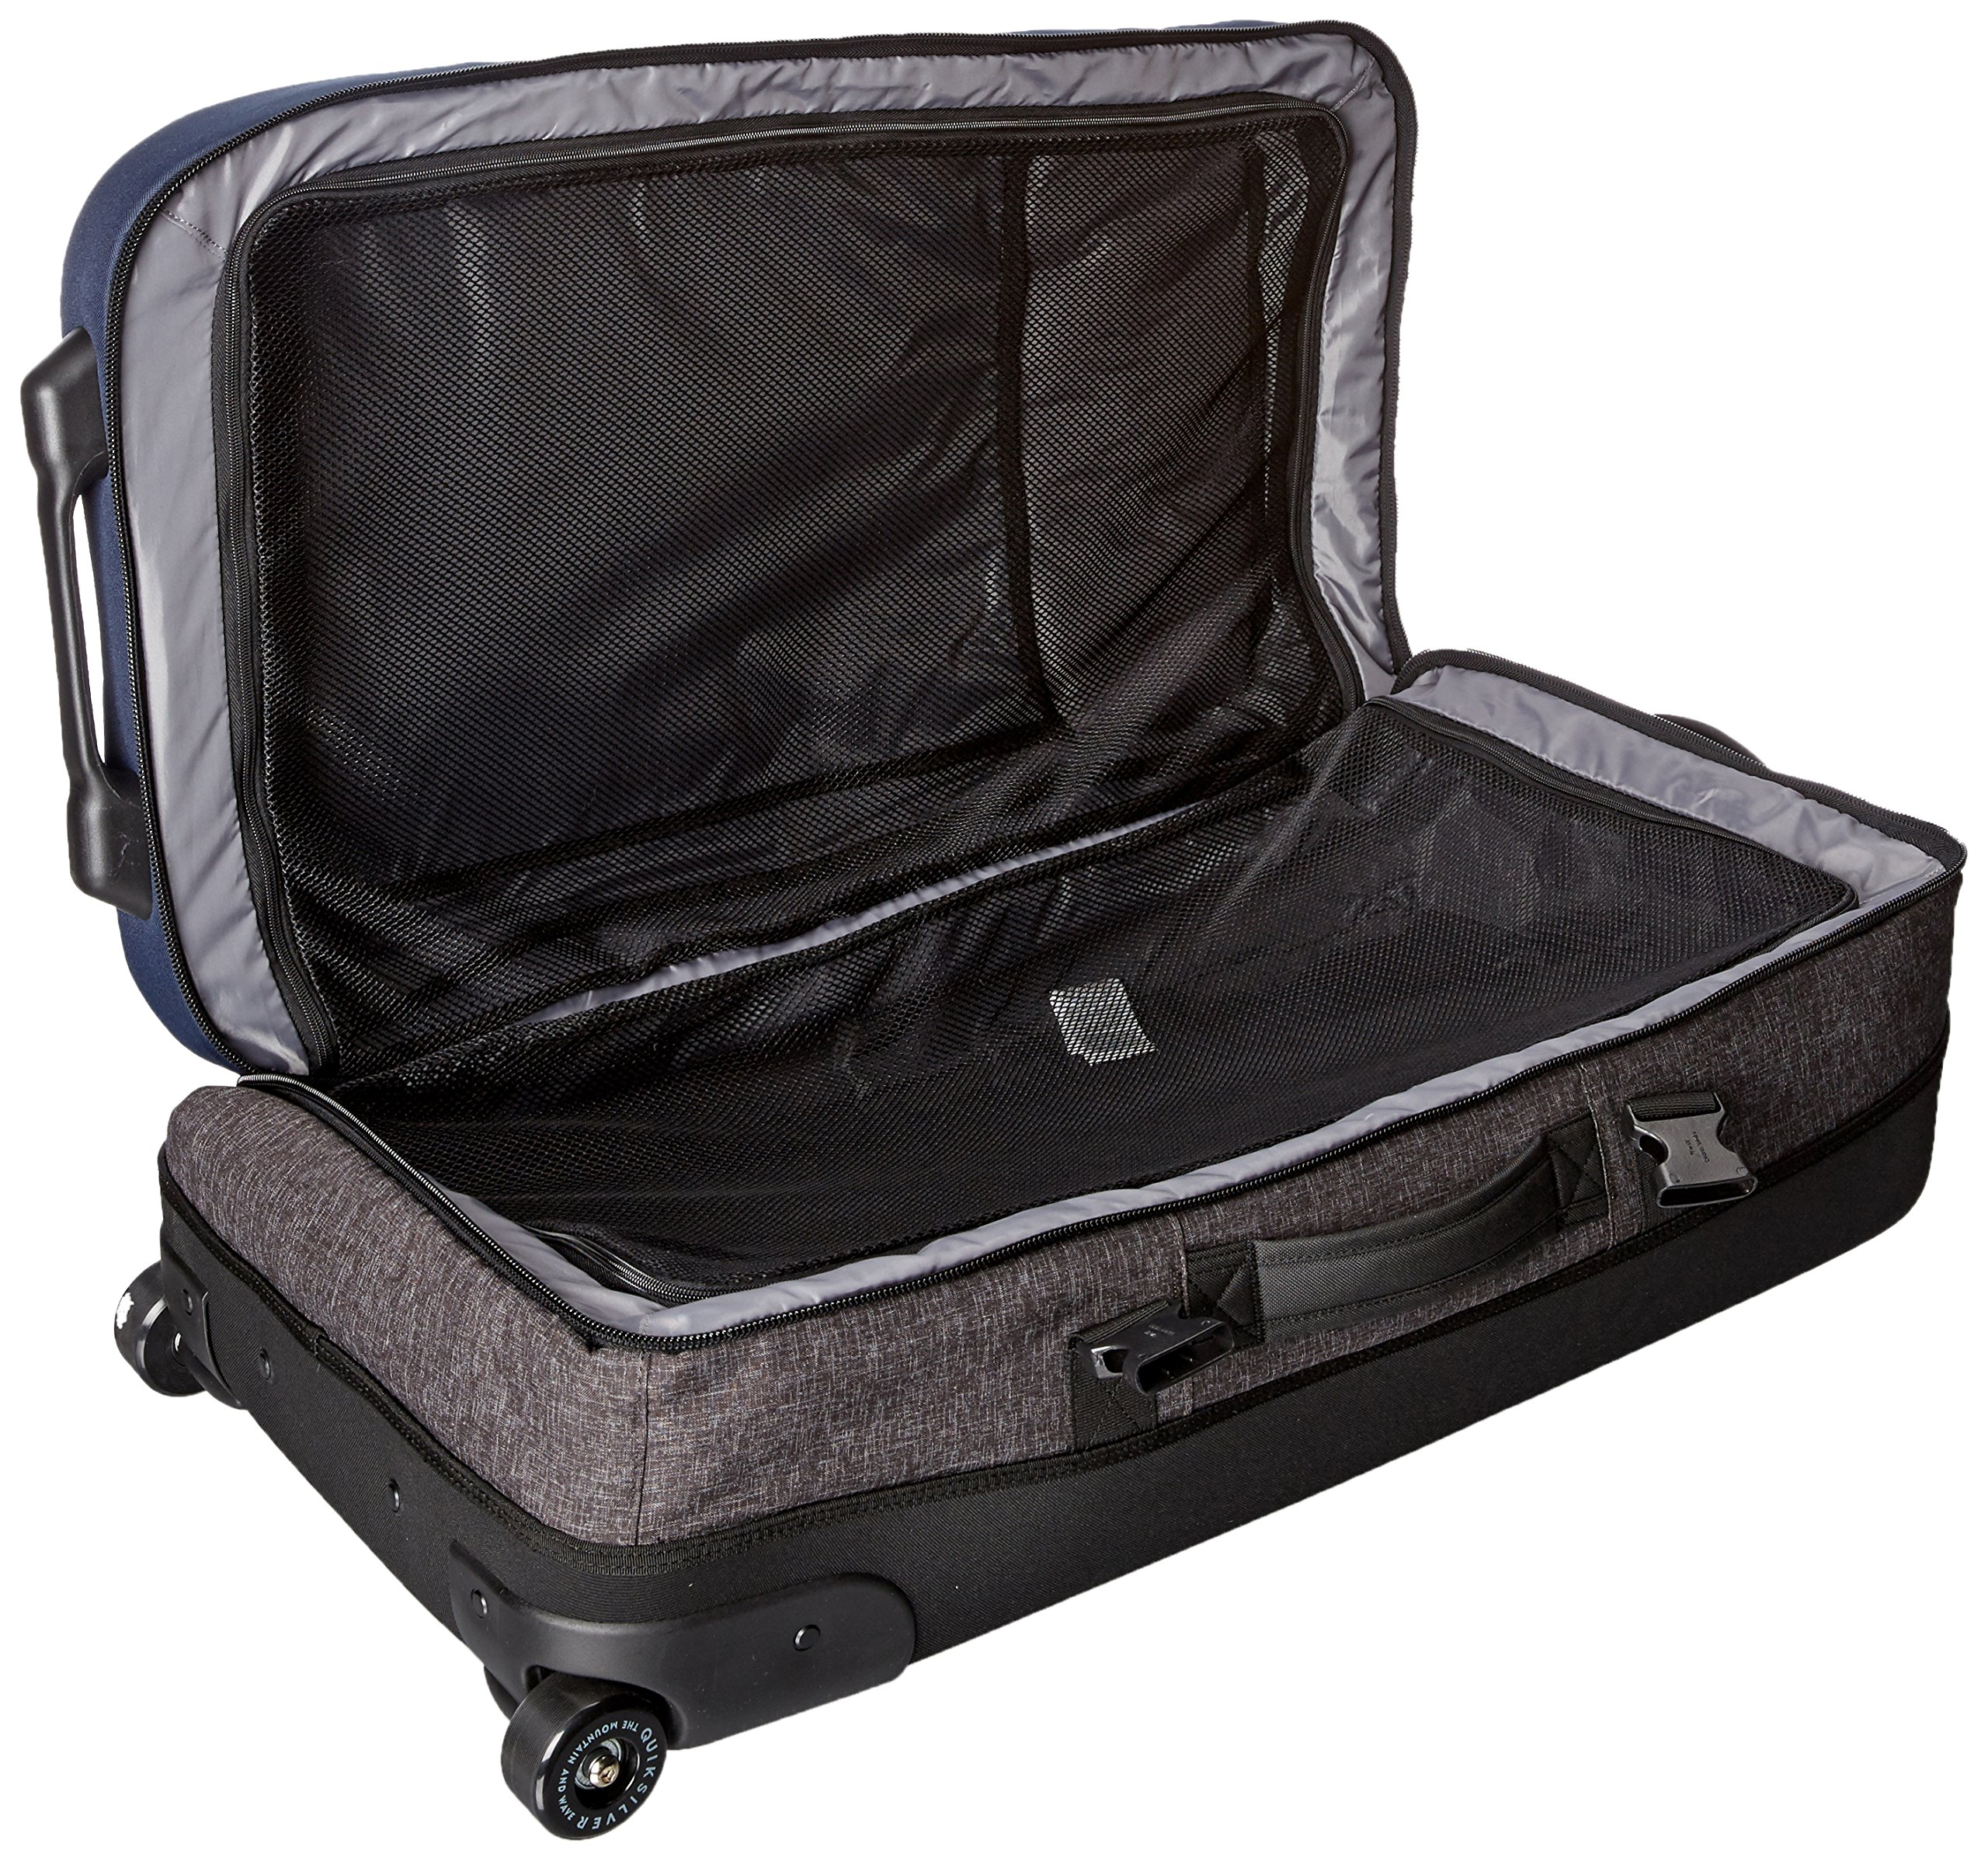 Quiksilver Young Men's Reach Luggage Roller Bag Accessory, -navy blazer, One Size by Quiksilver (Image #5)